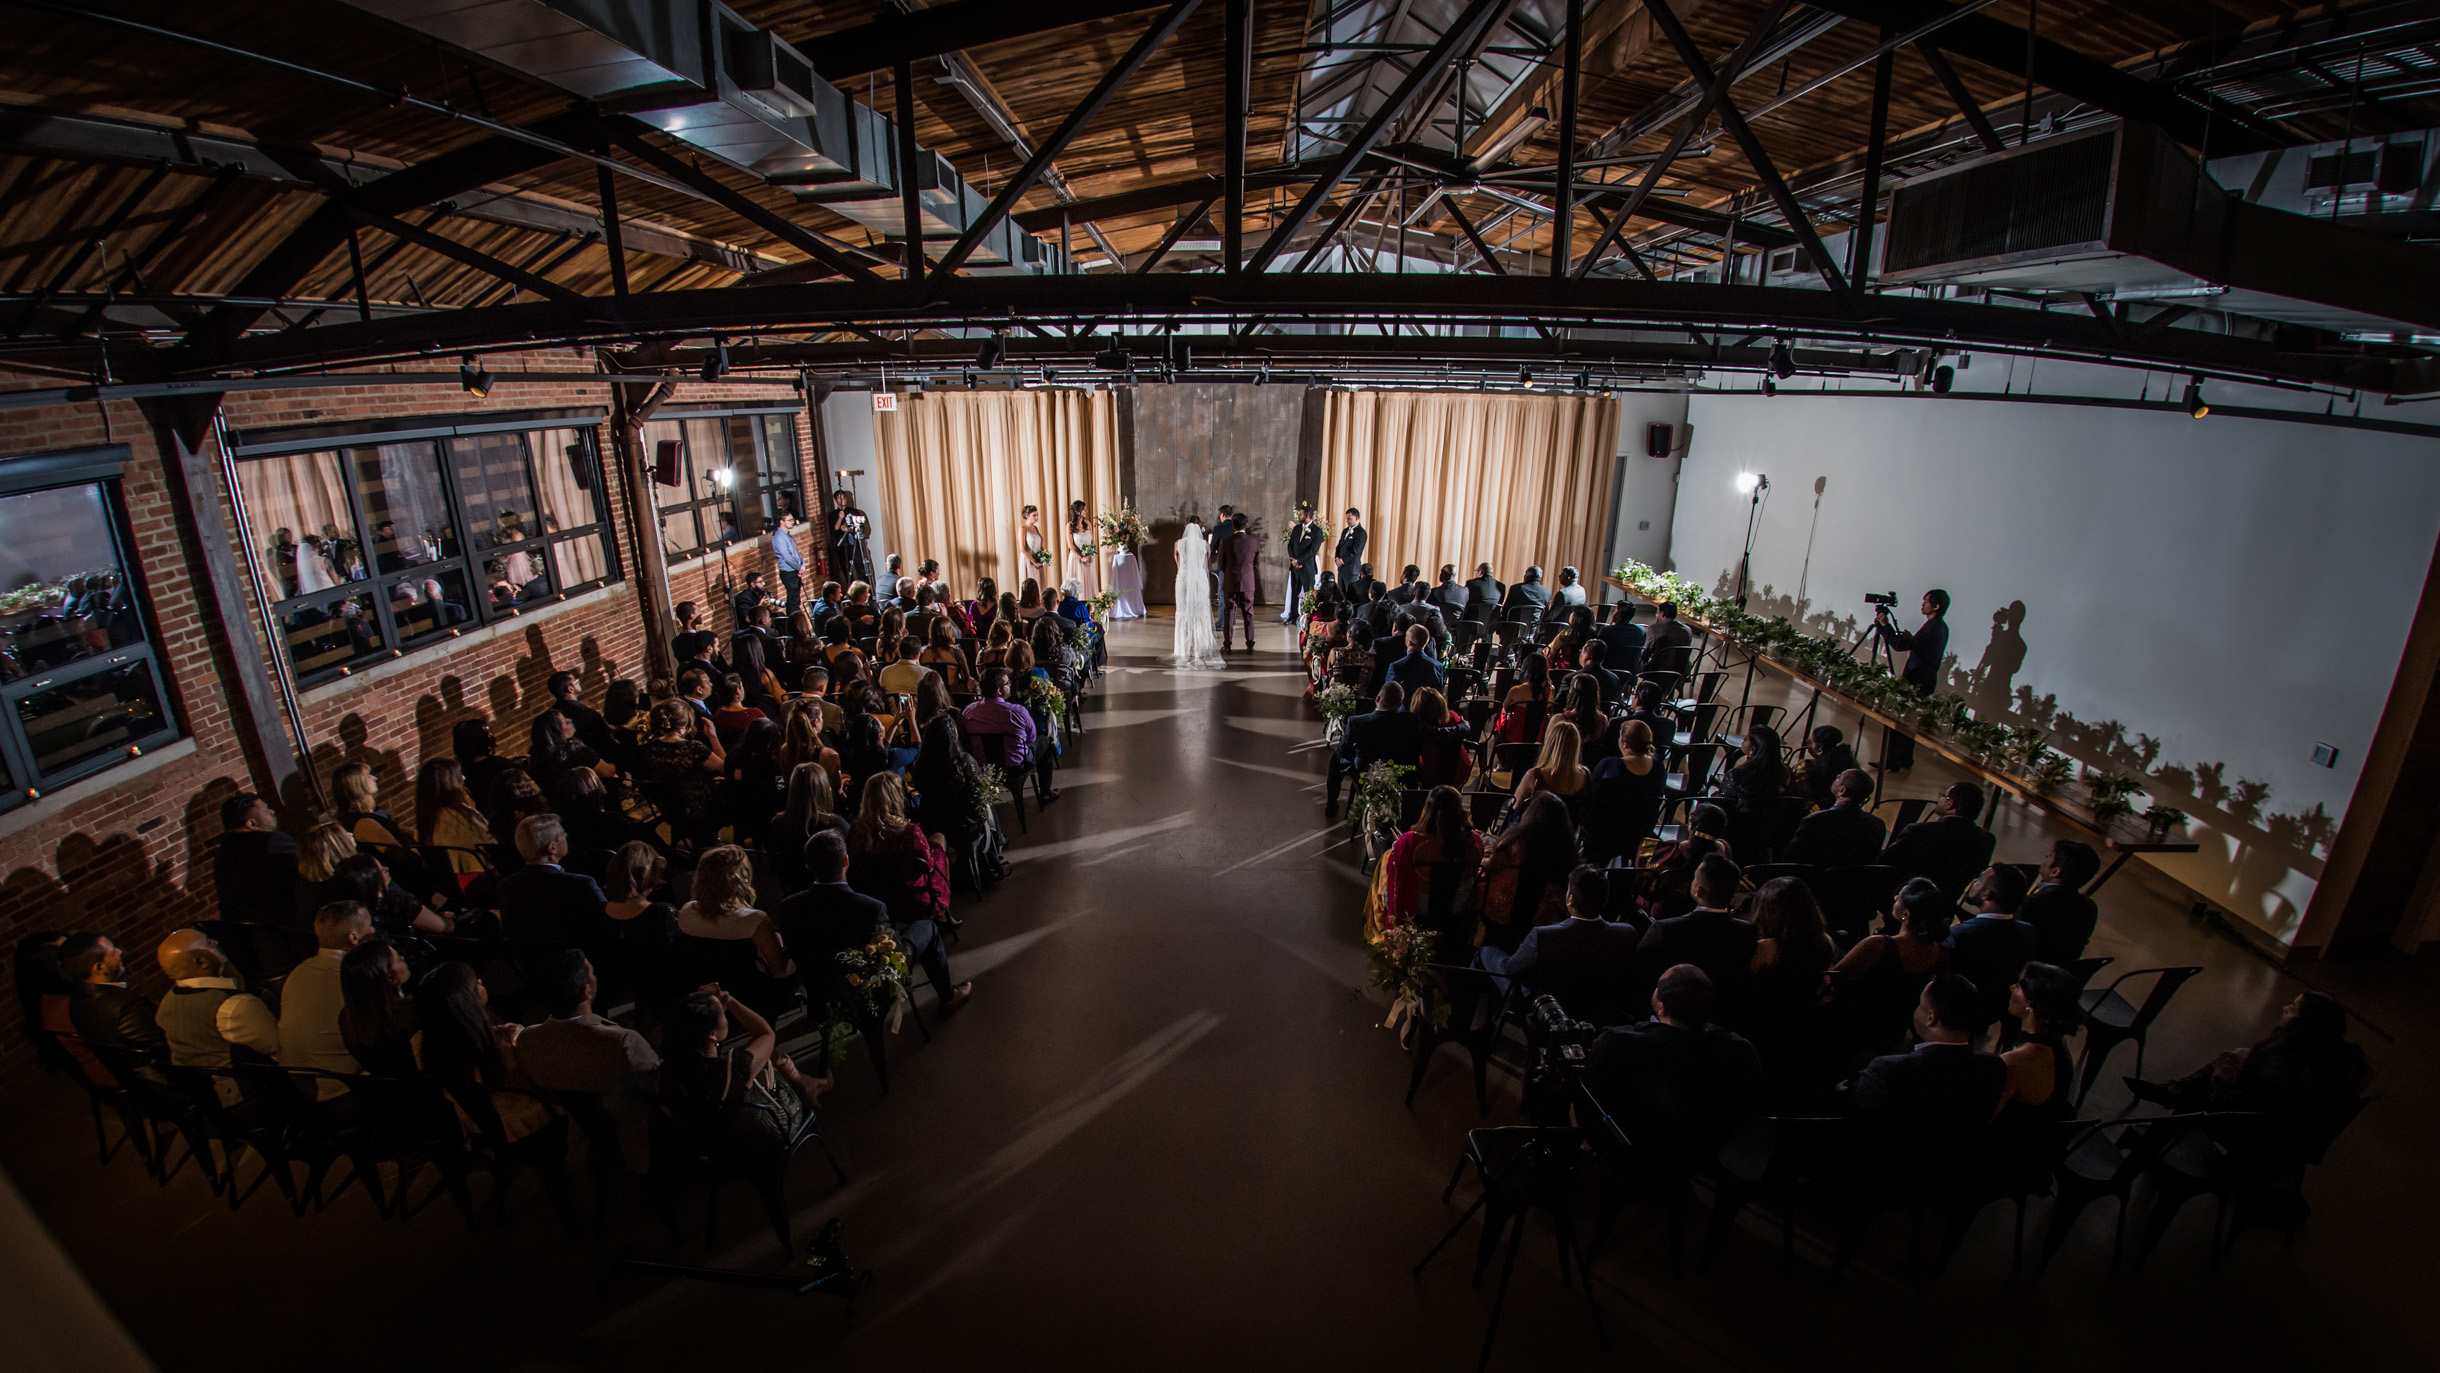 Artistic photo of wedding ceremony at the industrial wedding venue Ovation on the west side of Chicago-280